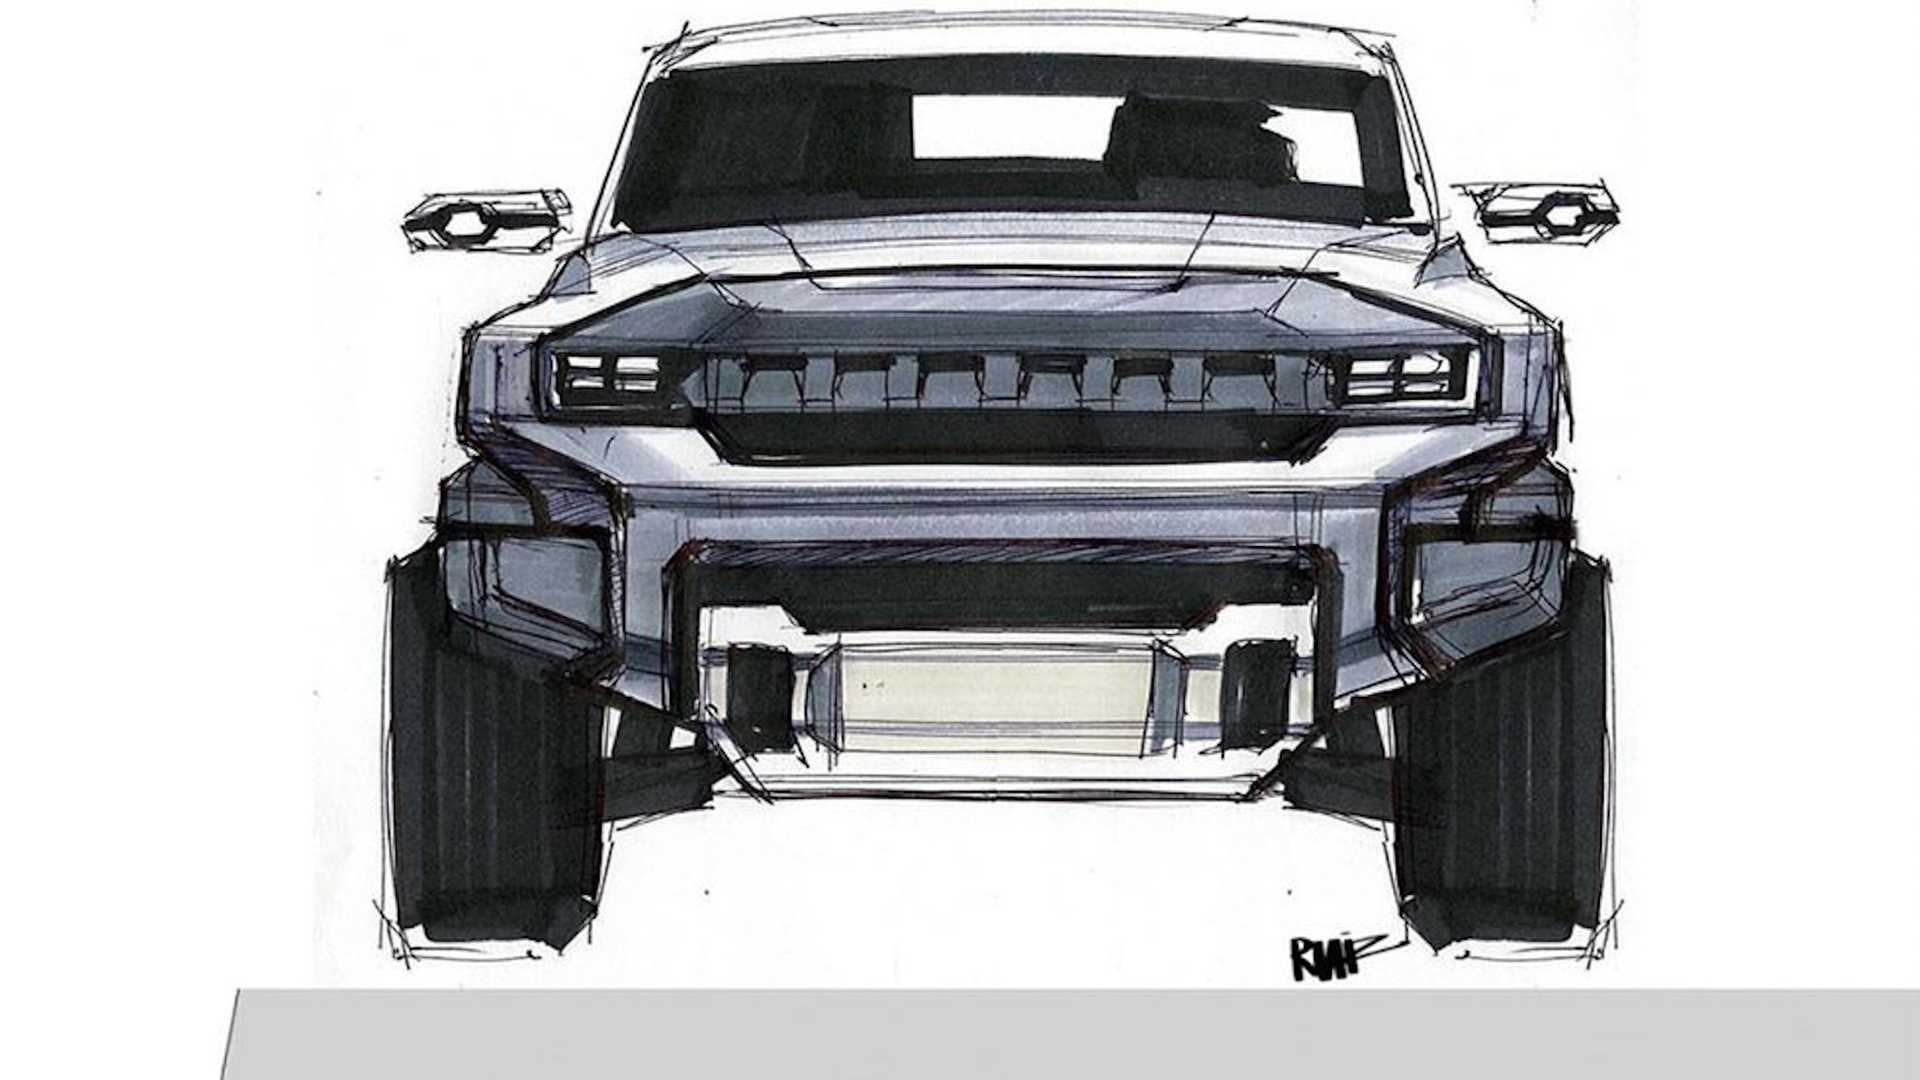 2022-gmc-hummer-ev-sketches-7